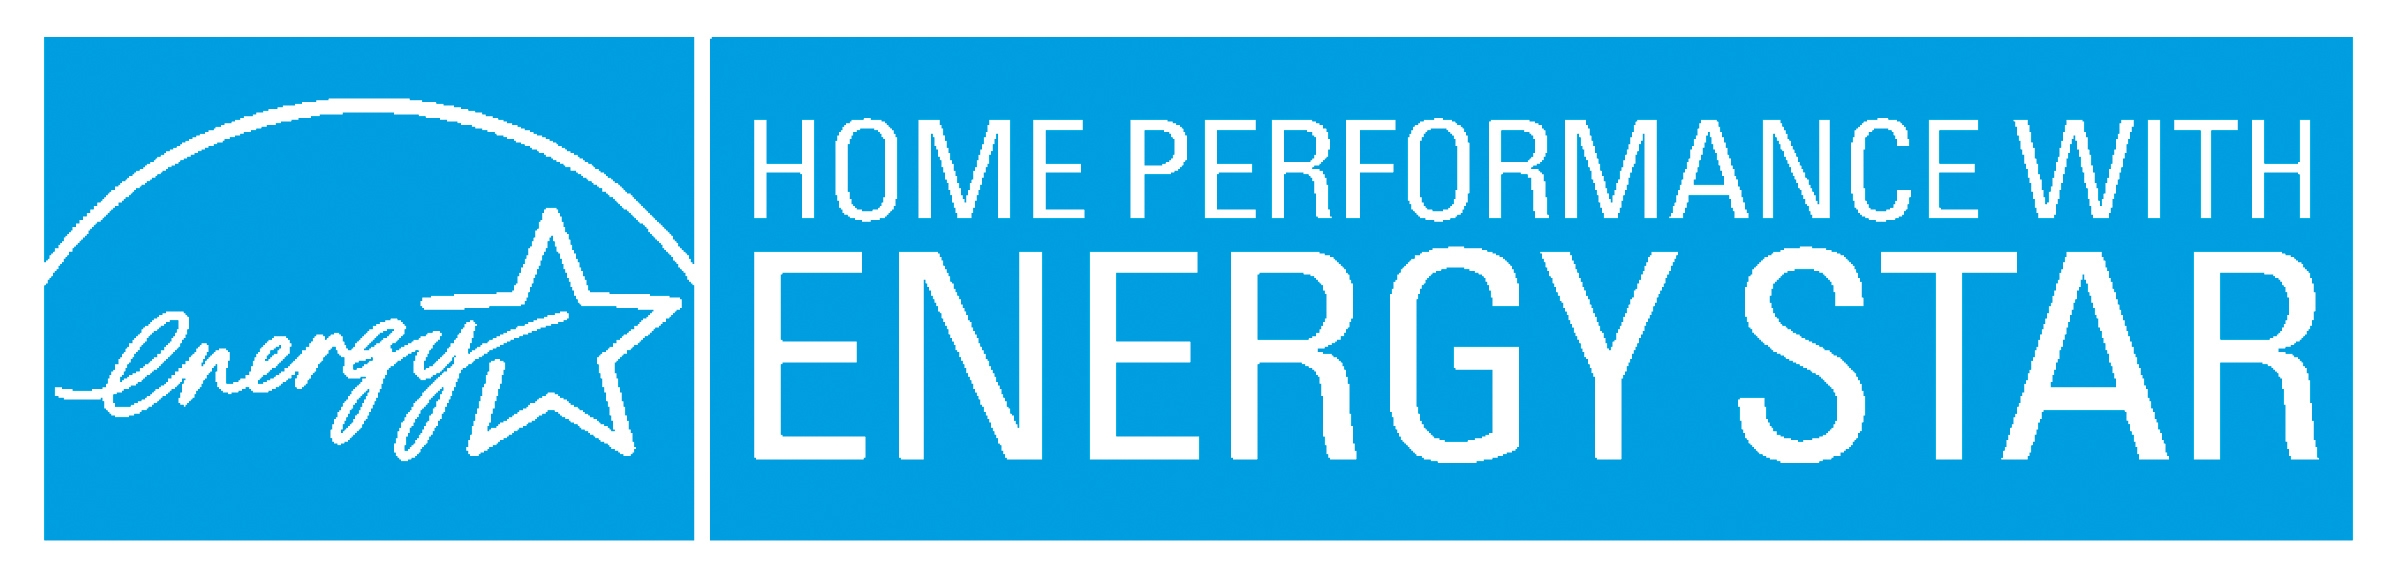 Total Home Performance is your Eastern Maryland Home Performance with Energy Star contractor.